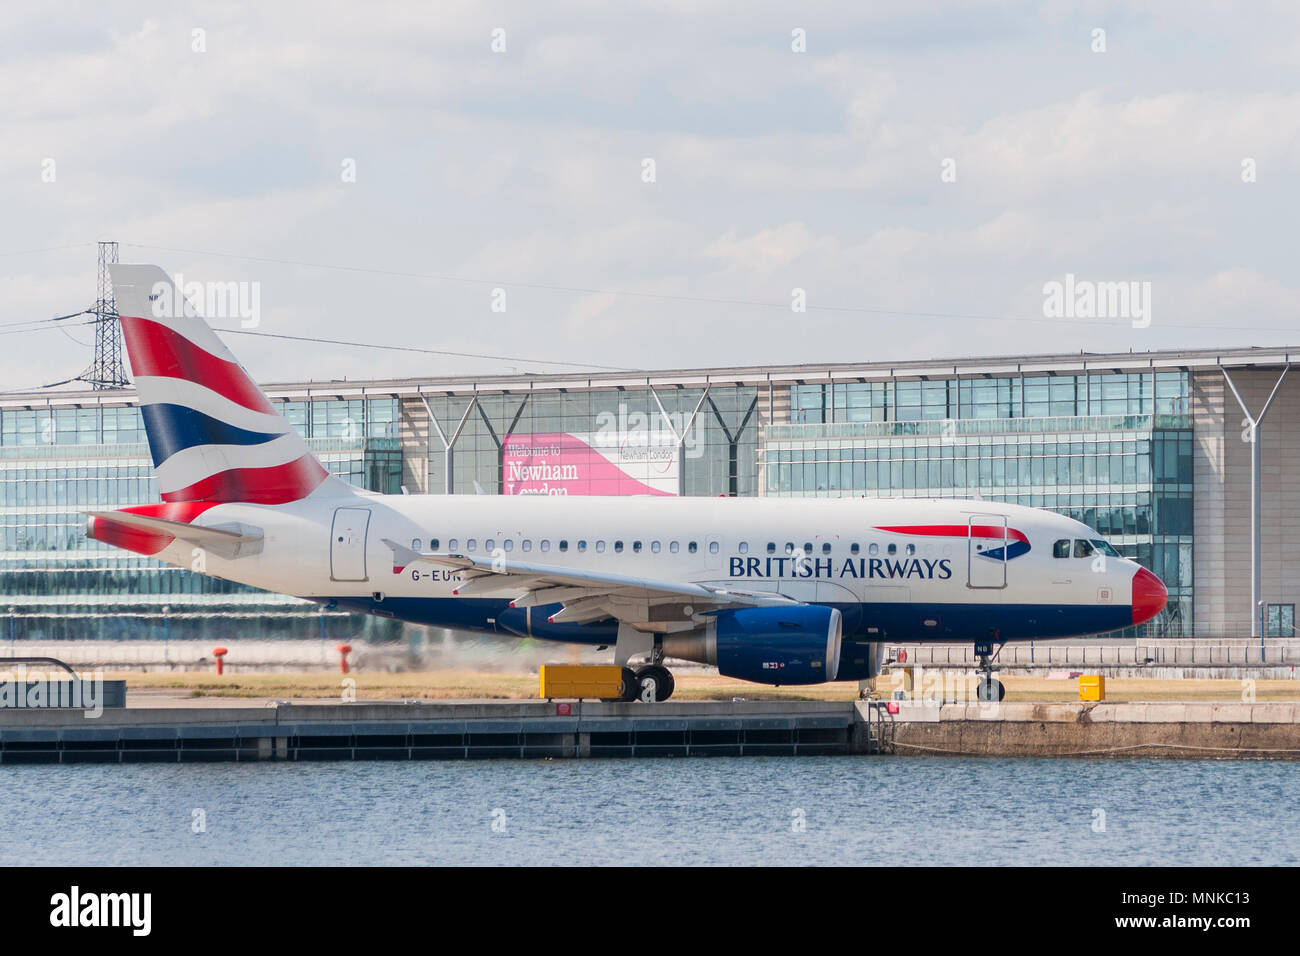 LONDON, UK - AUGUST, 2 2013; A British Airways Airbus A-318 (G-EUNB) rolls on the runway of the London City Airport in the borough of Newham before ta Stock Photo